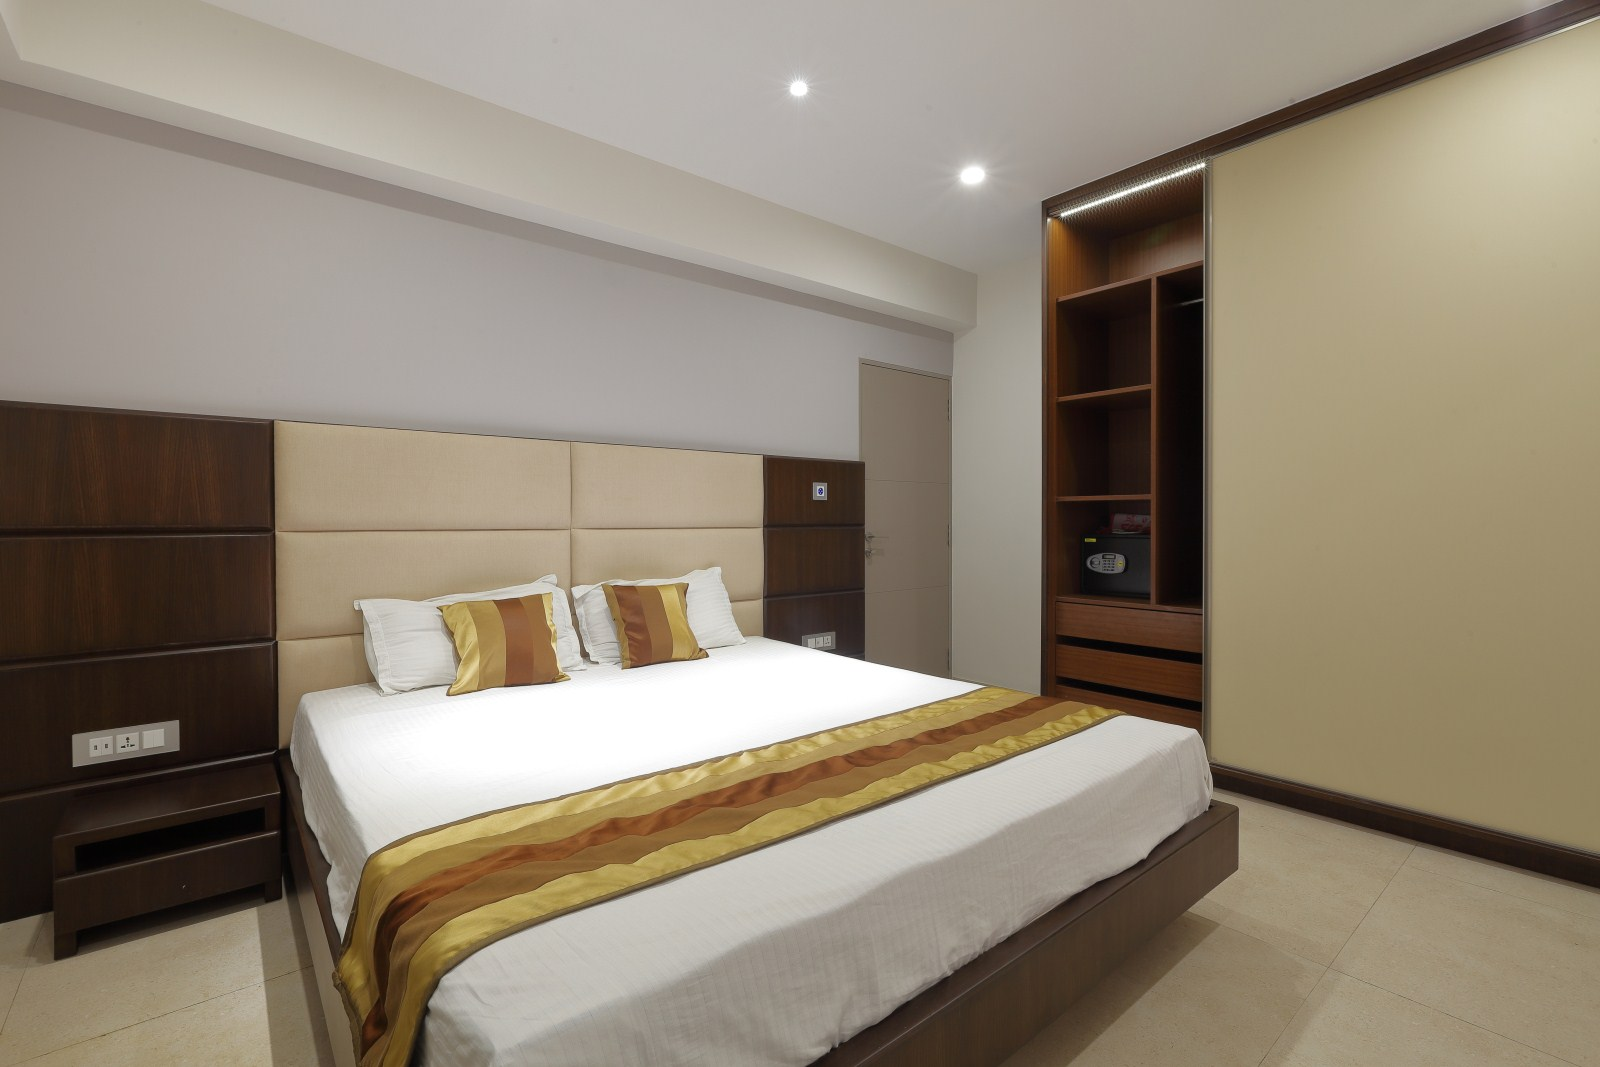 Interior Design Cost For Bedroom U2014 Best Architects U0026 Interior Designer In  Ahmedabad NEOTECTURE